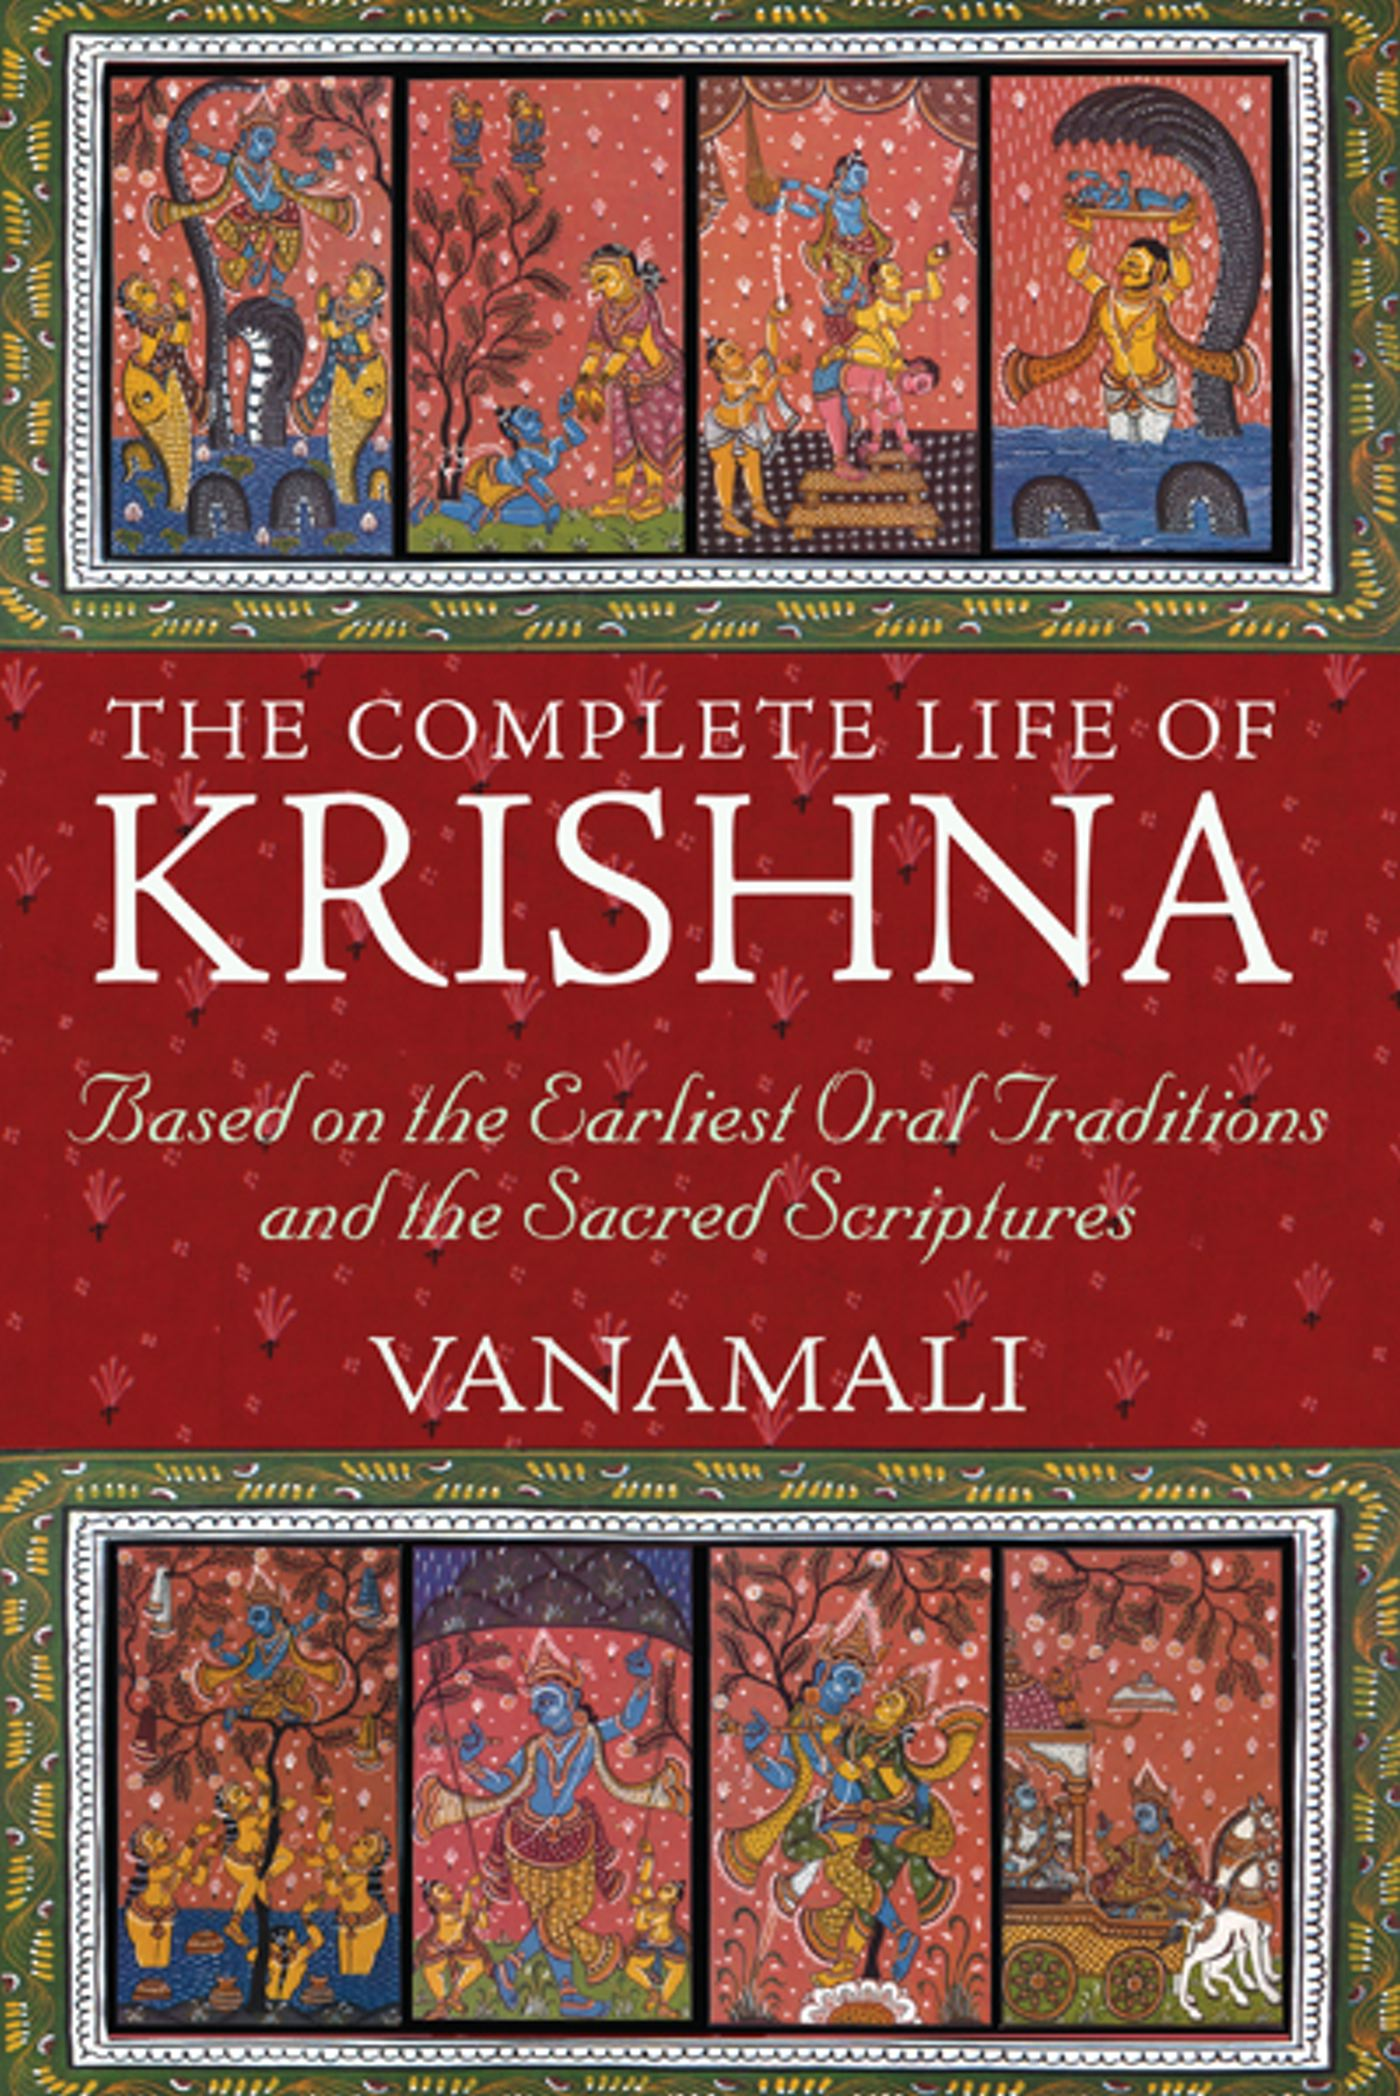 The complete life of krishna 9781594774751 hr